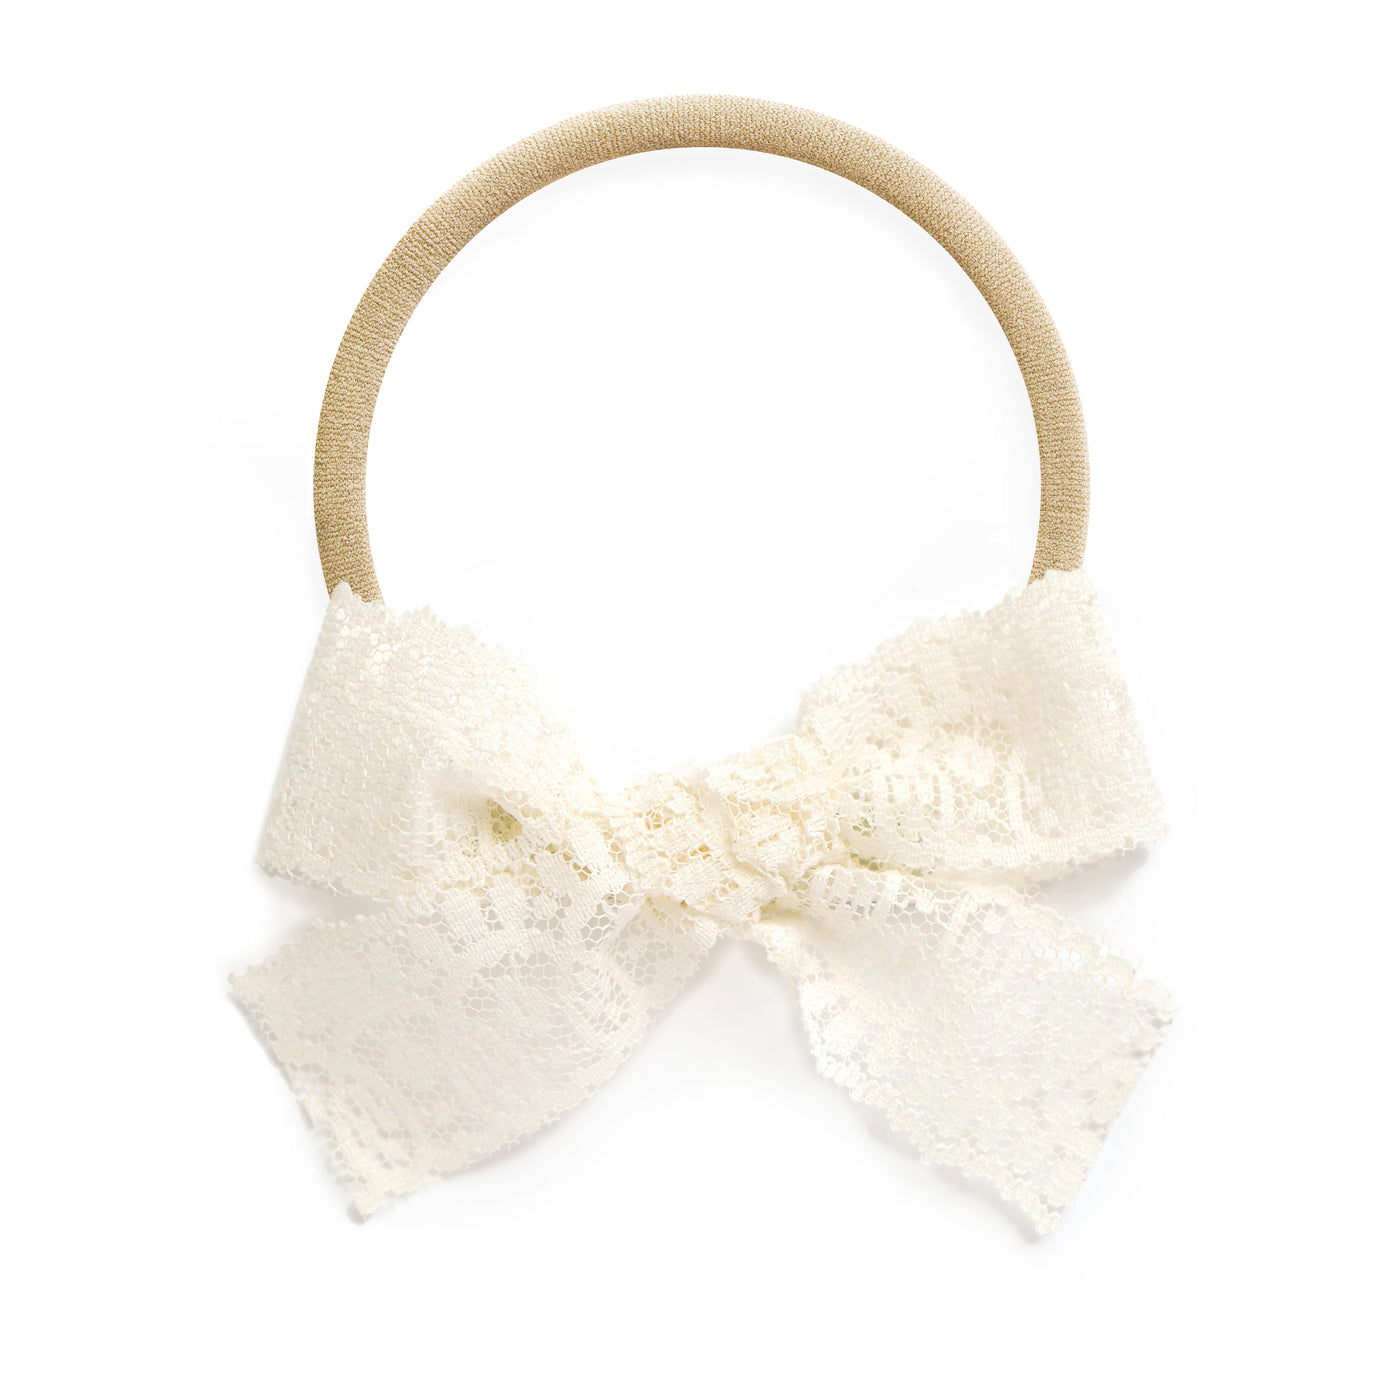 village baby sadie white ivory lace headband stretchy soft cute